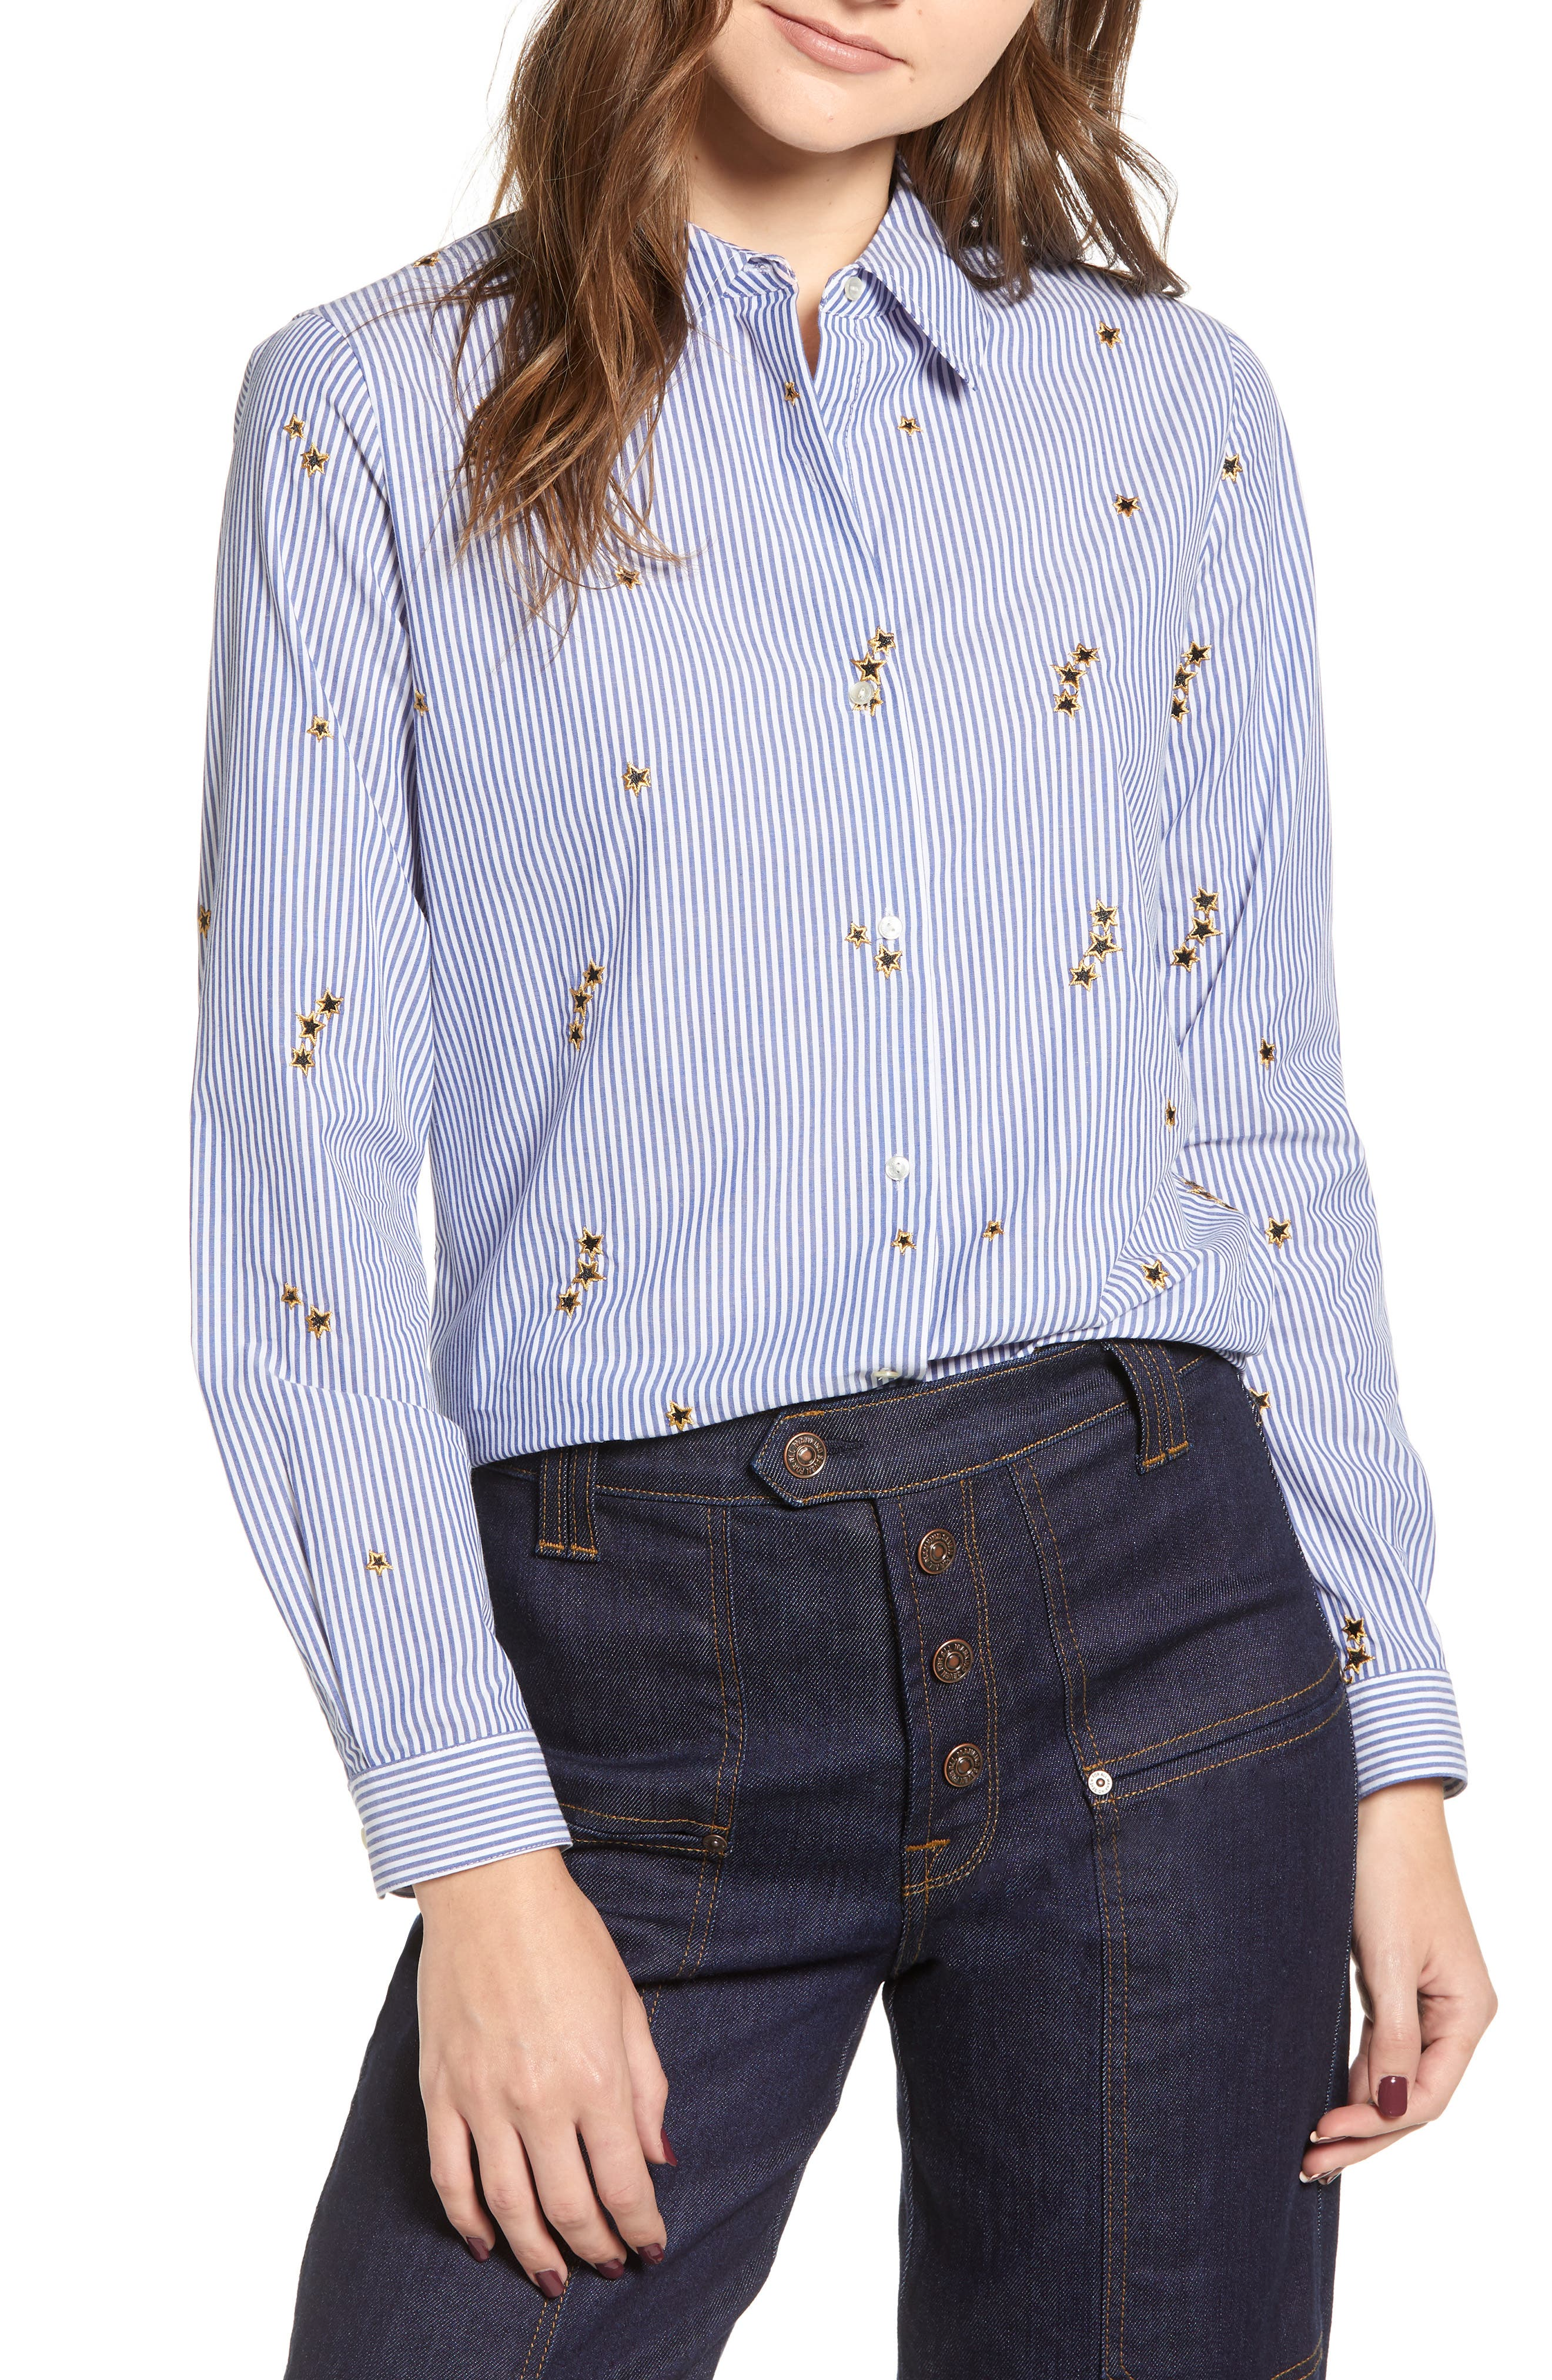 Relaxed Fit Star Detail Stripe Cotton Blouse,                             Main thumbnail 1, color,                             BLUE WHITE PIN STRIPES